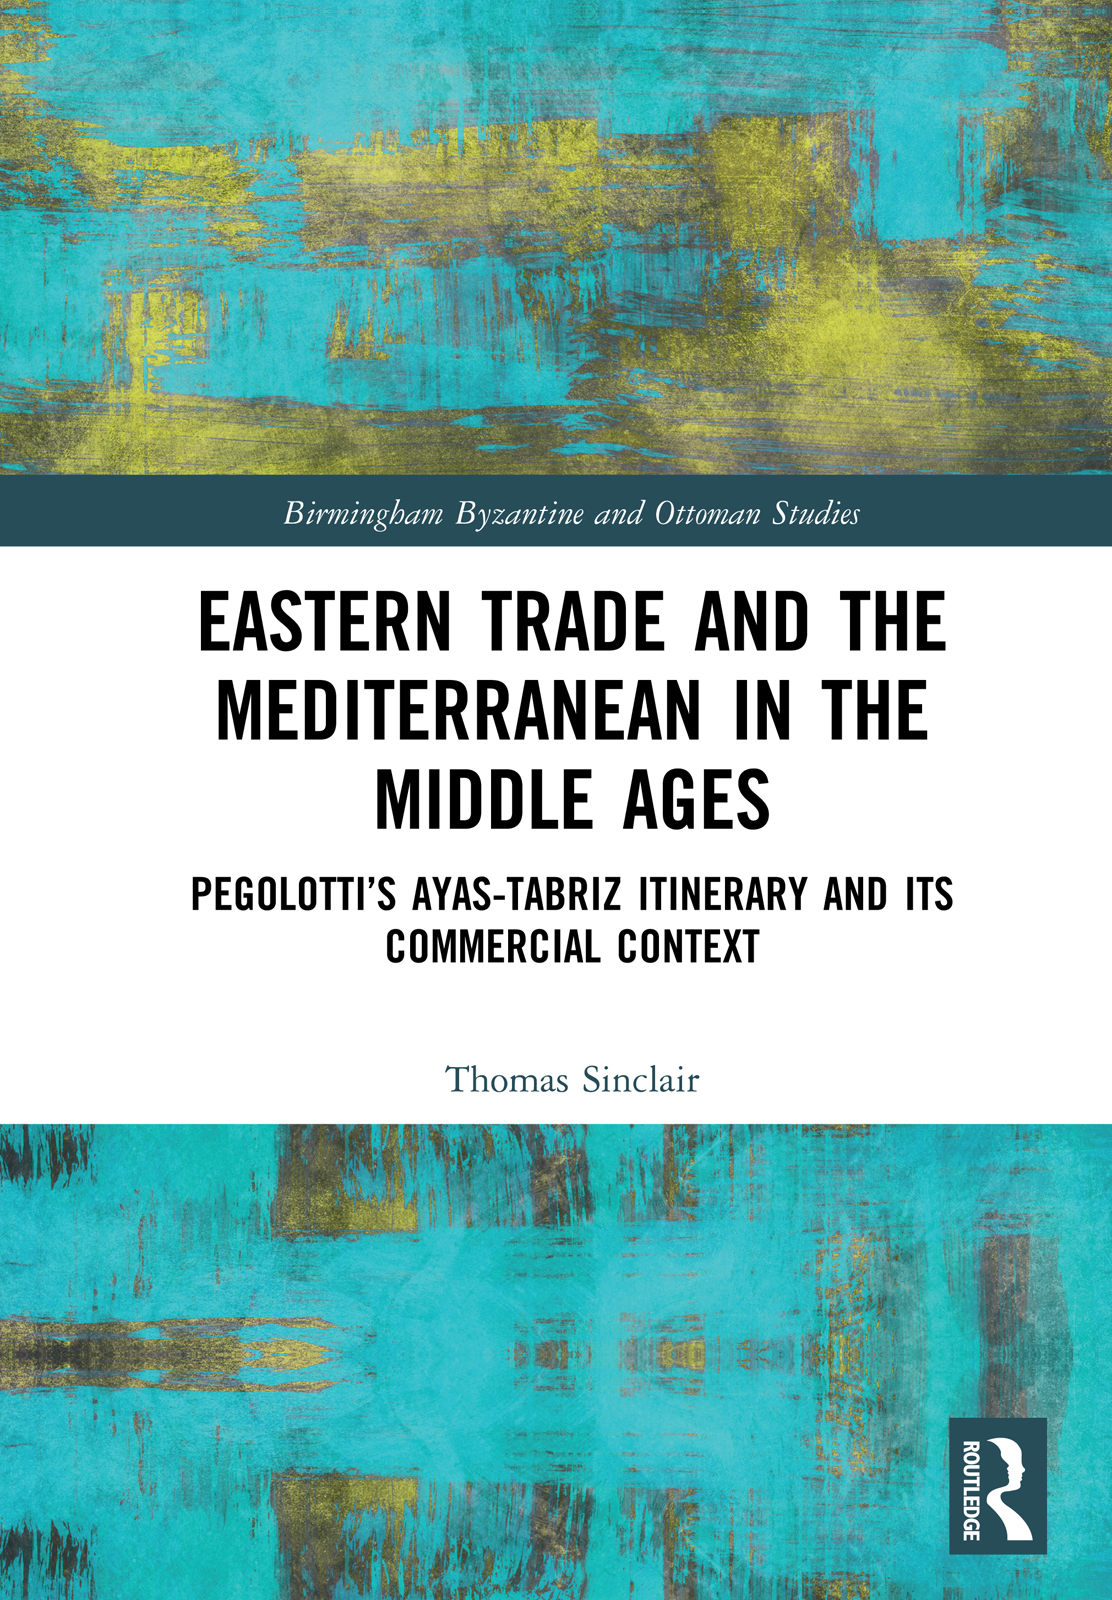 Eastern Trade and the Mediterranean in the Middle Ages: Pegolotti's Ayas-Tabriz Itinerary and its Commercial Context, 1st Edition (Hardback) book cover